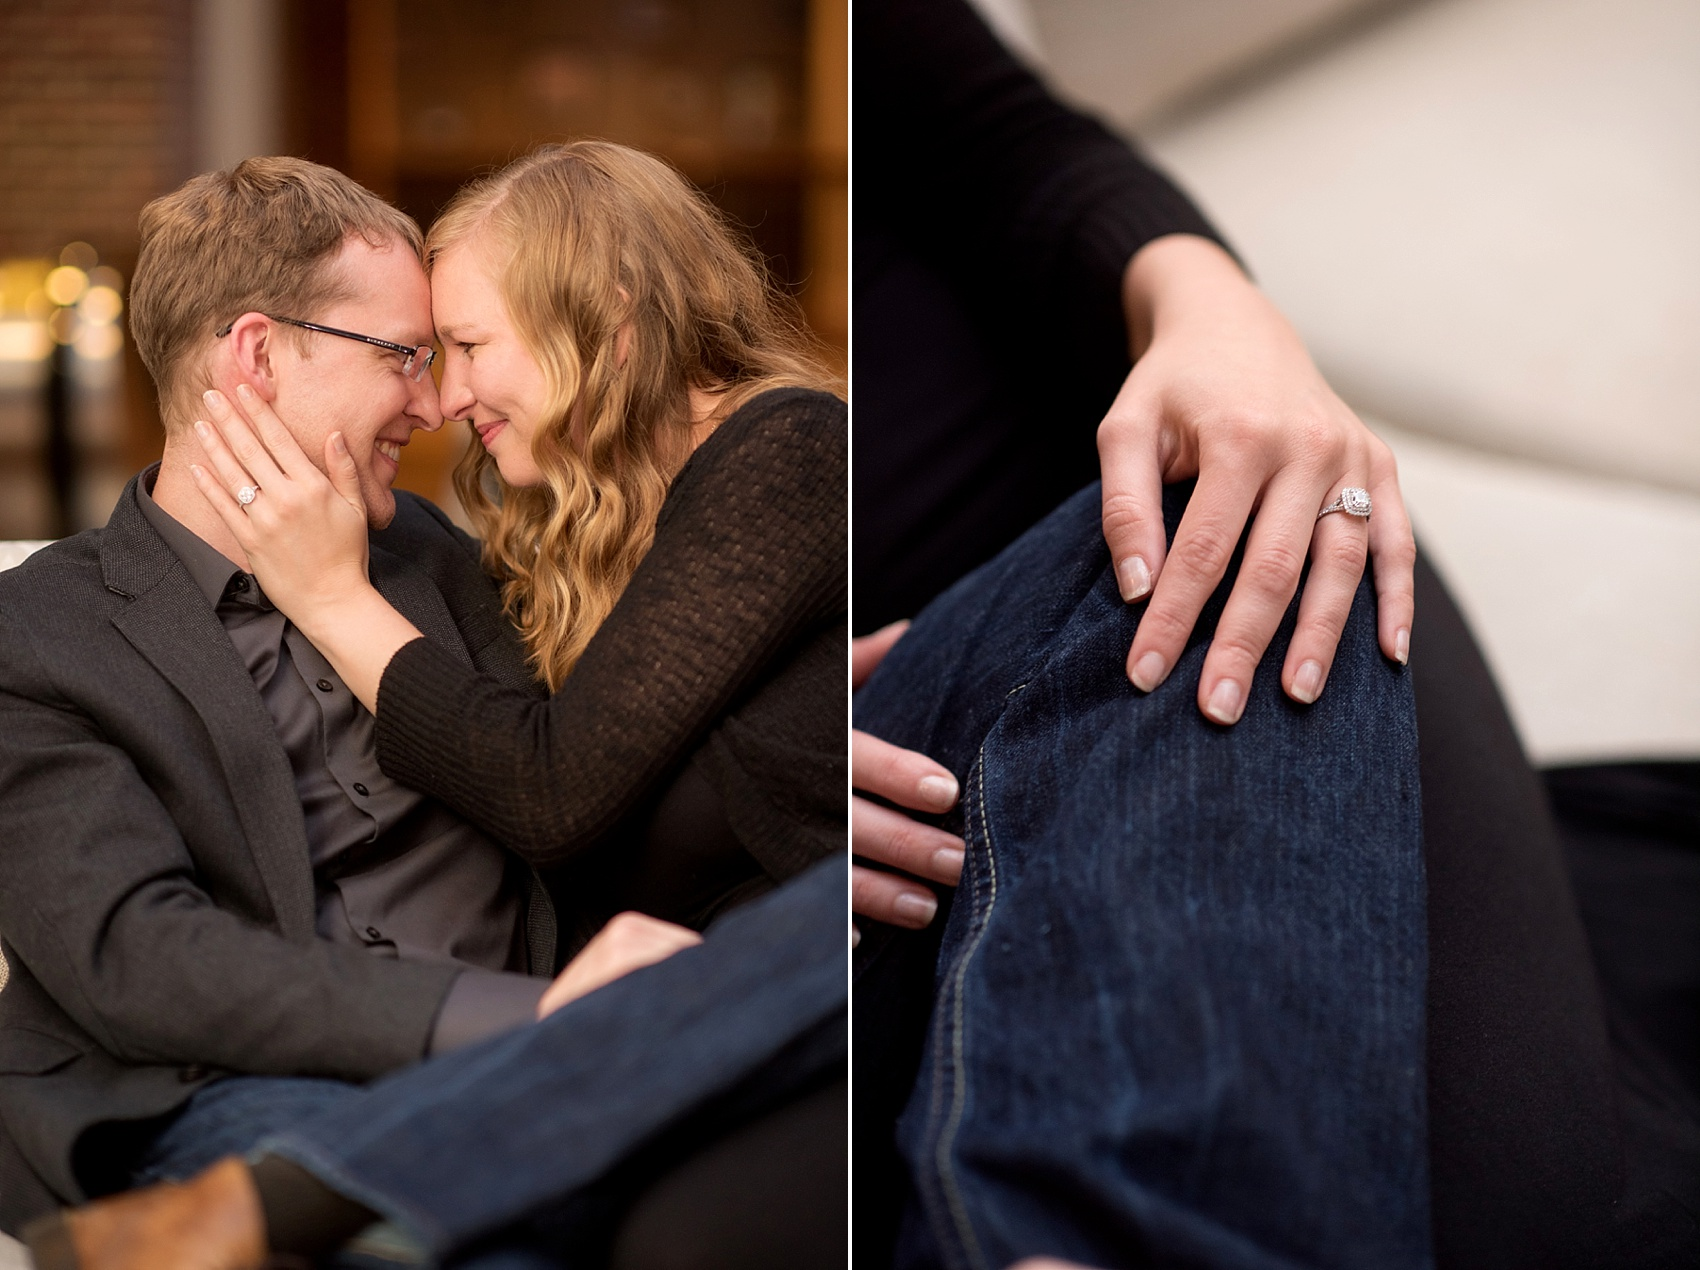 Raleigh wedding photographer, Mikkel Paige Photography, captures downtown #proposal at the Sheraton hotel.